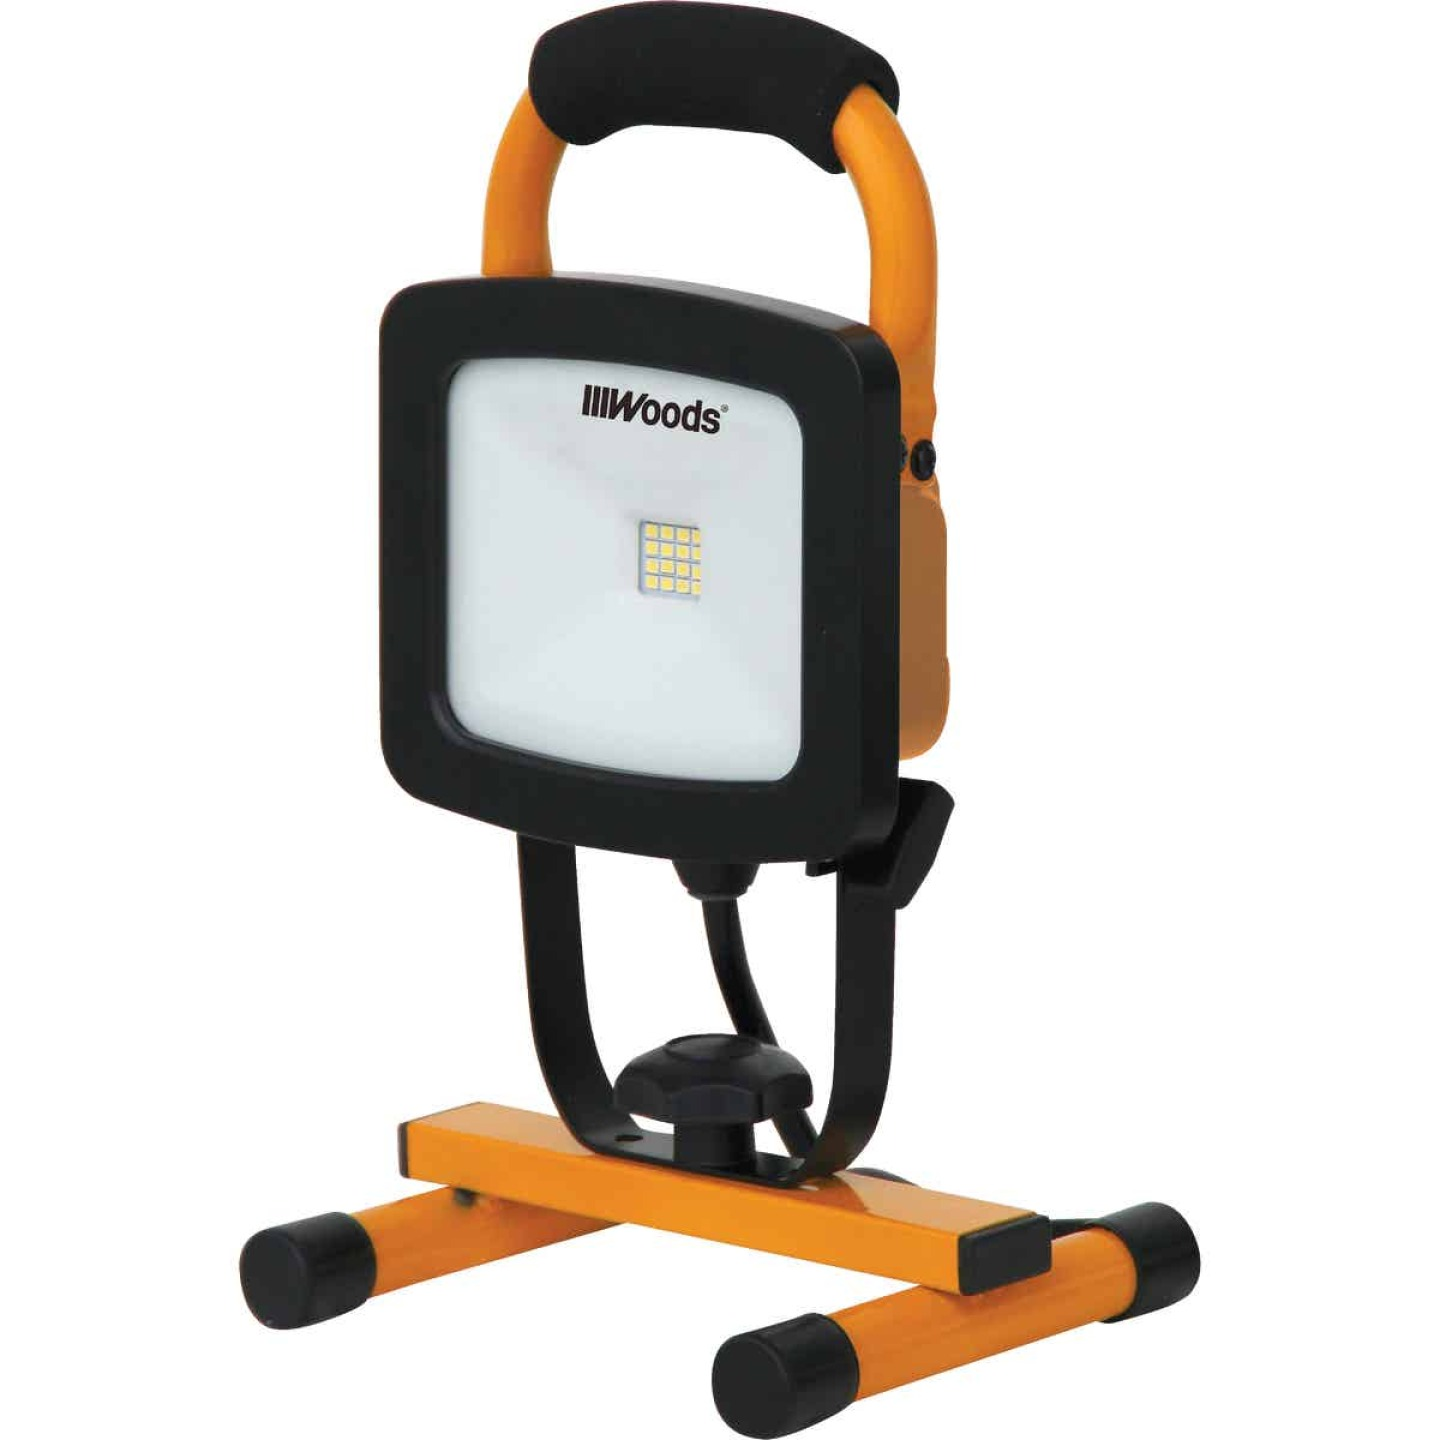 Woods 1000 Lm. LED H-Stand Portable Work Light Image 1